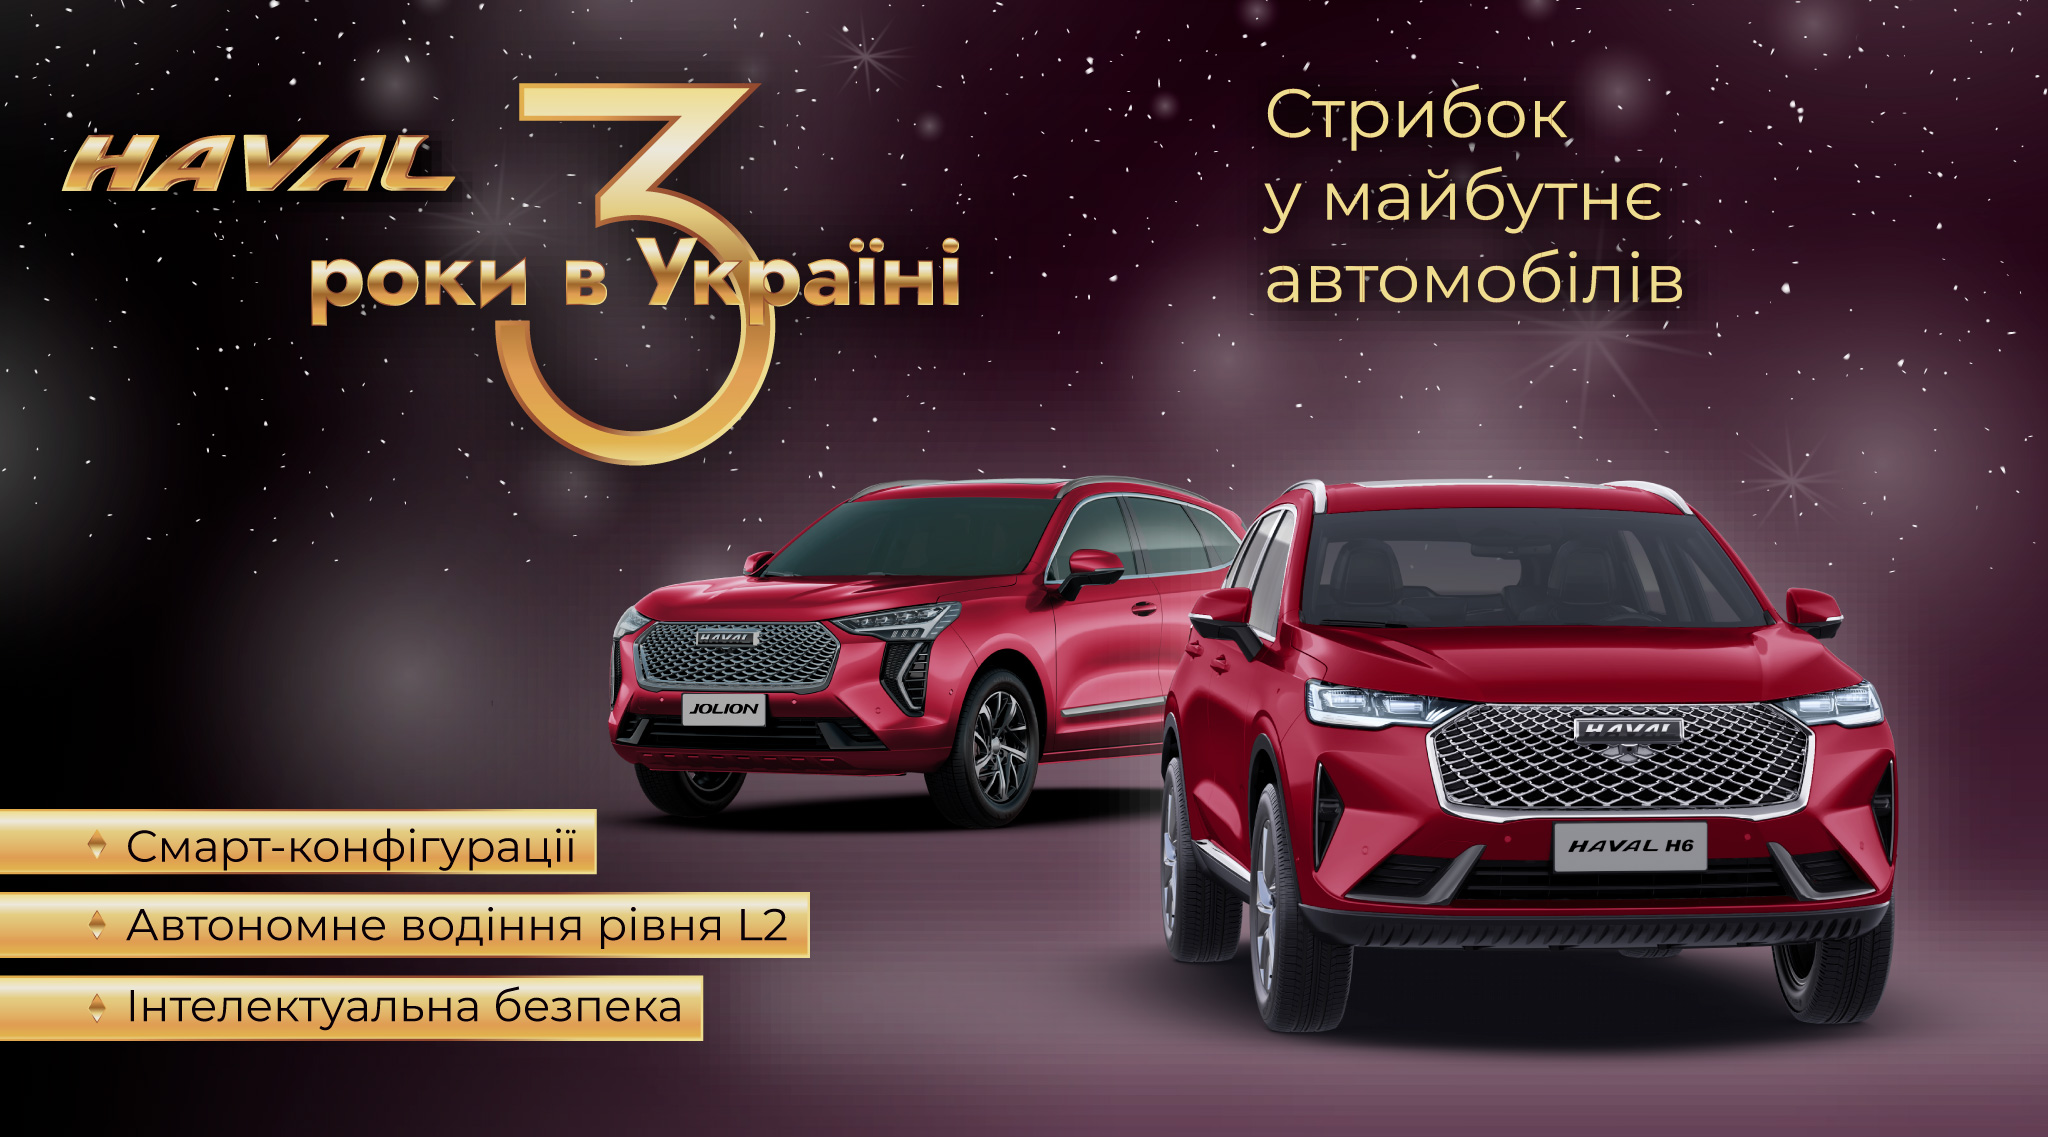 Haval 3 years